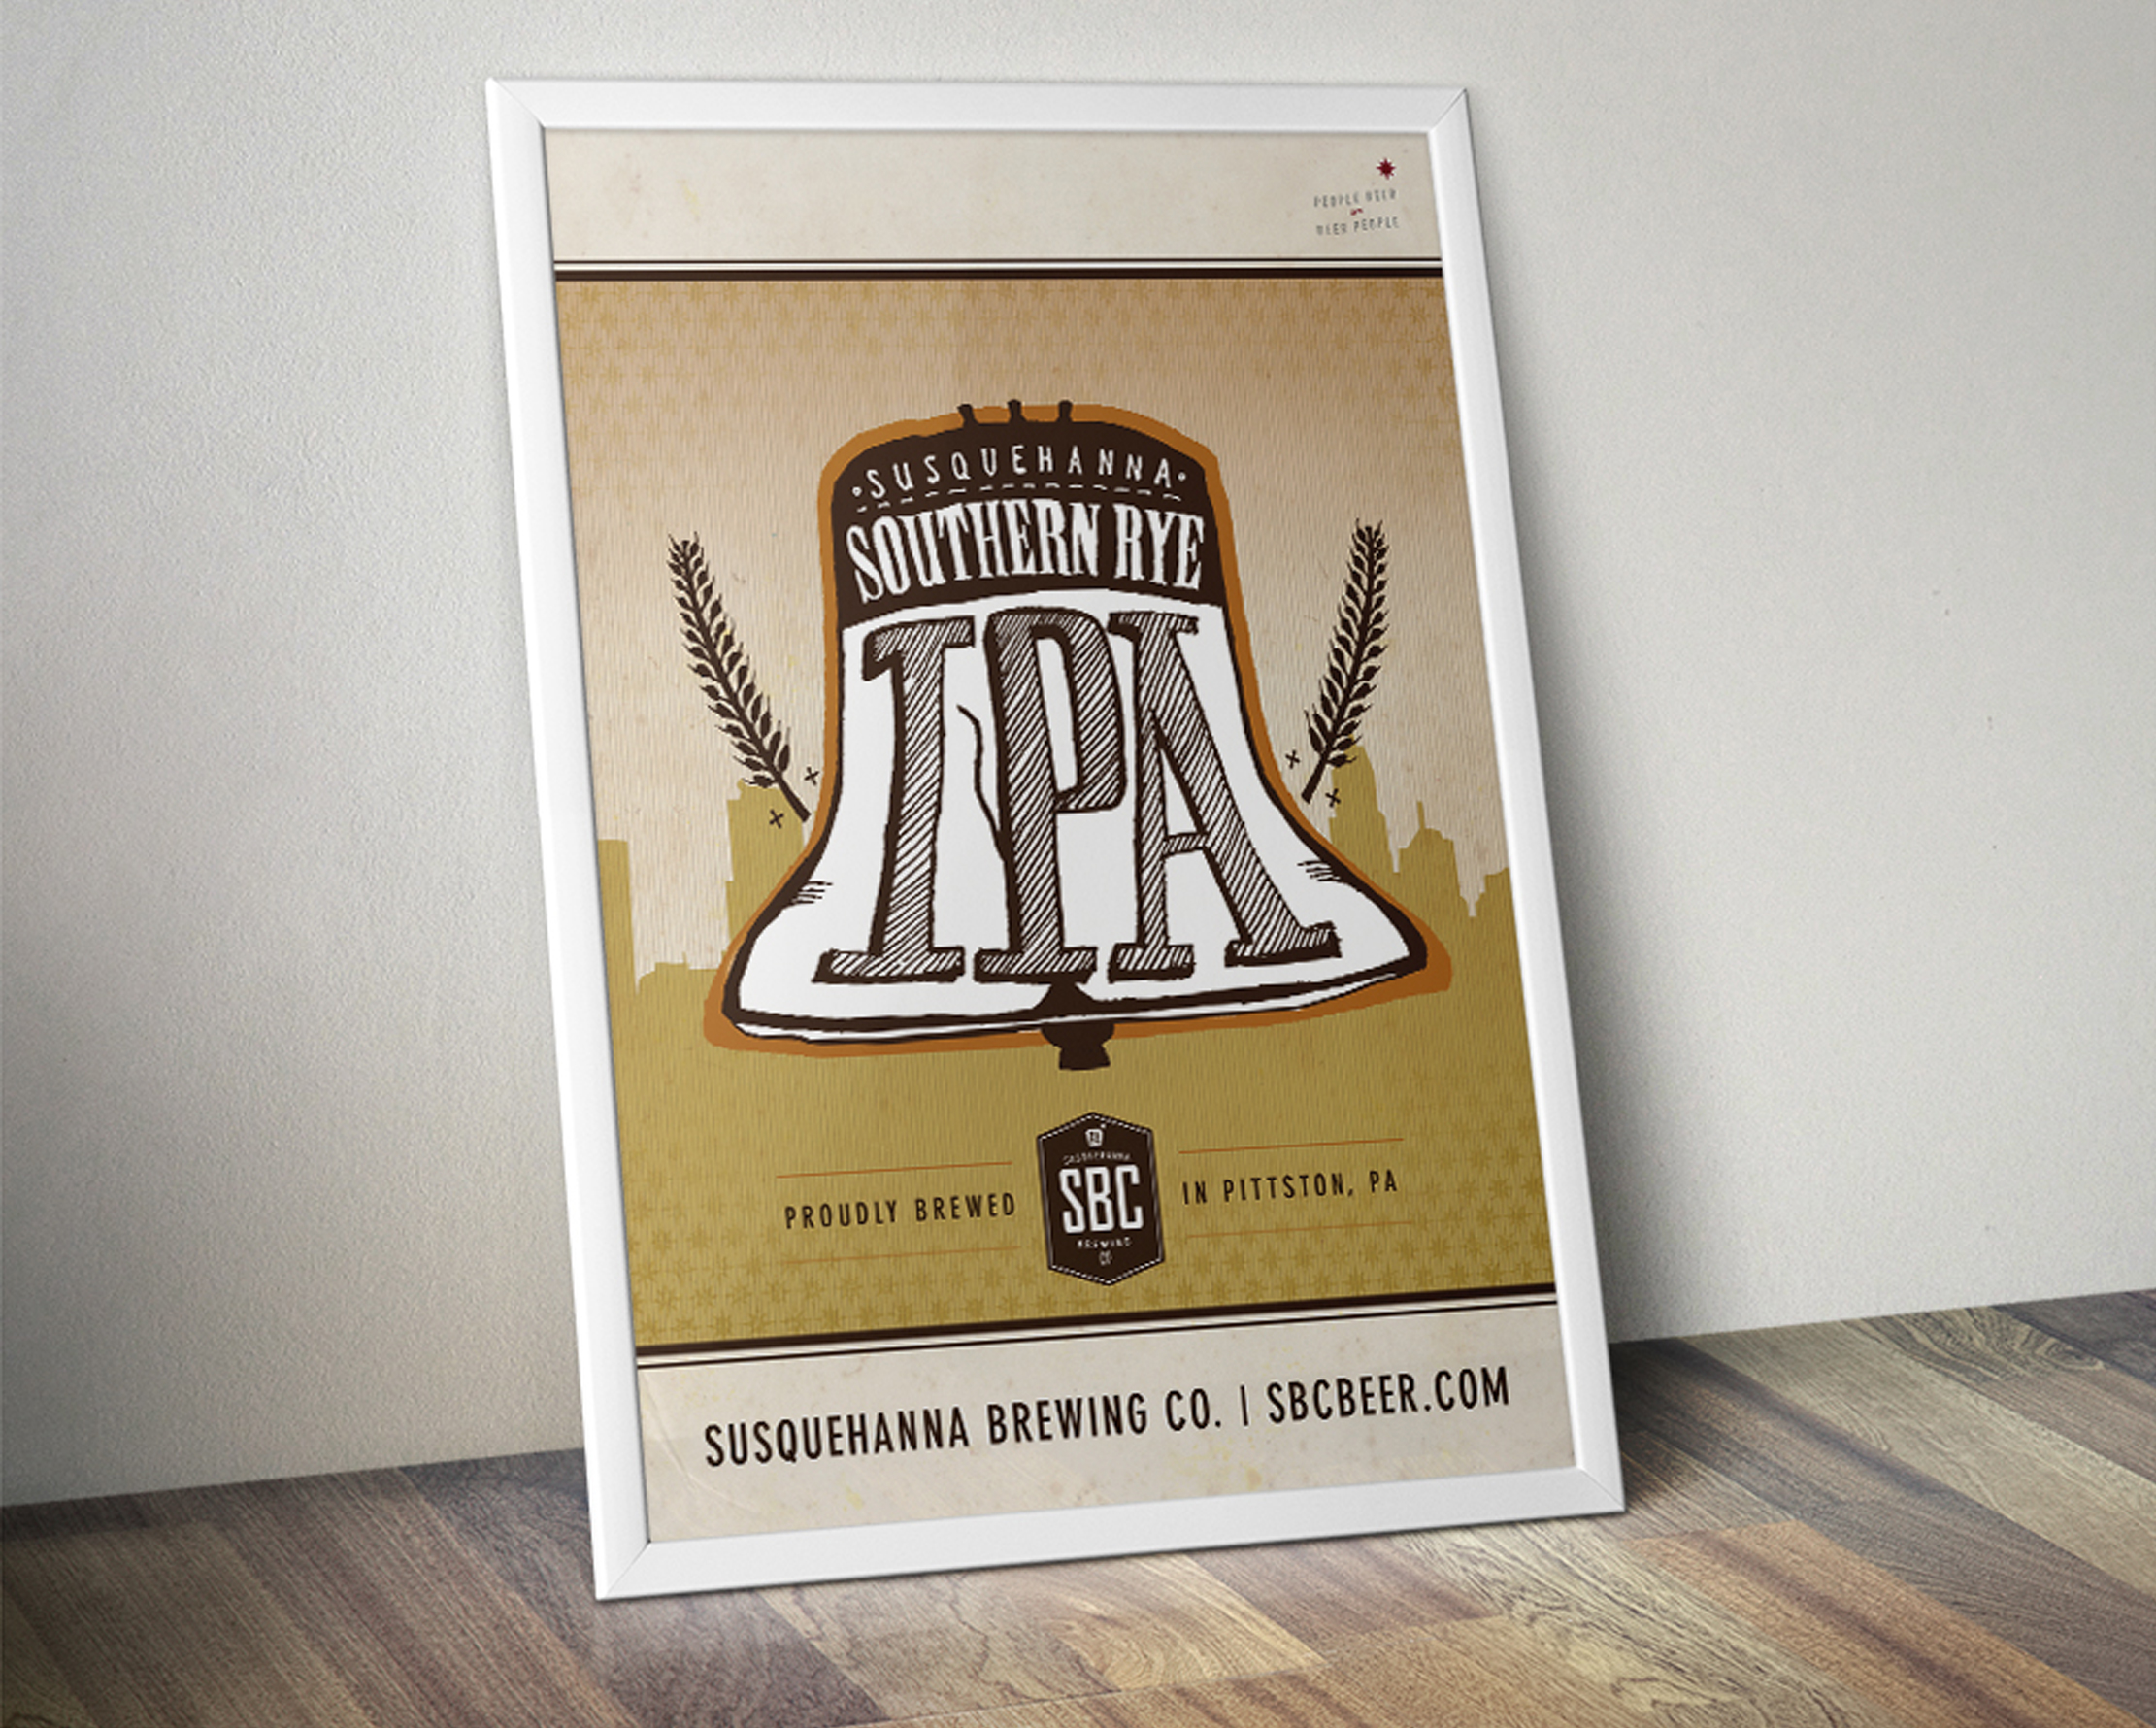 Susquehanna Brewing Co. Southern Rye IPA Poster Designed by Just Make Things